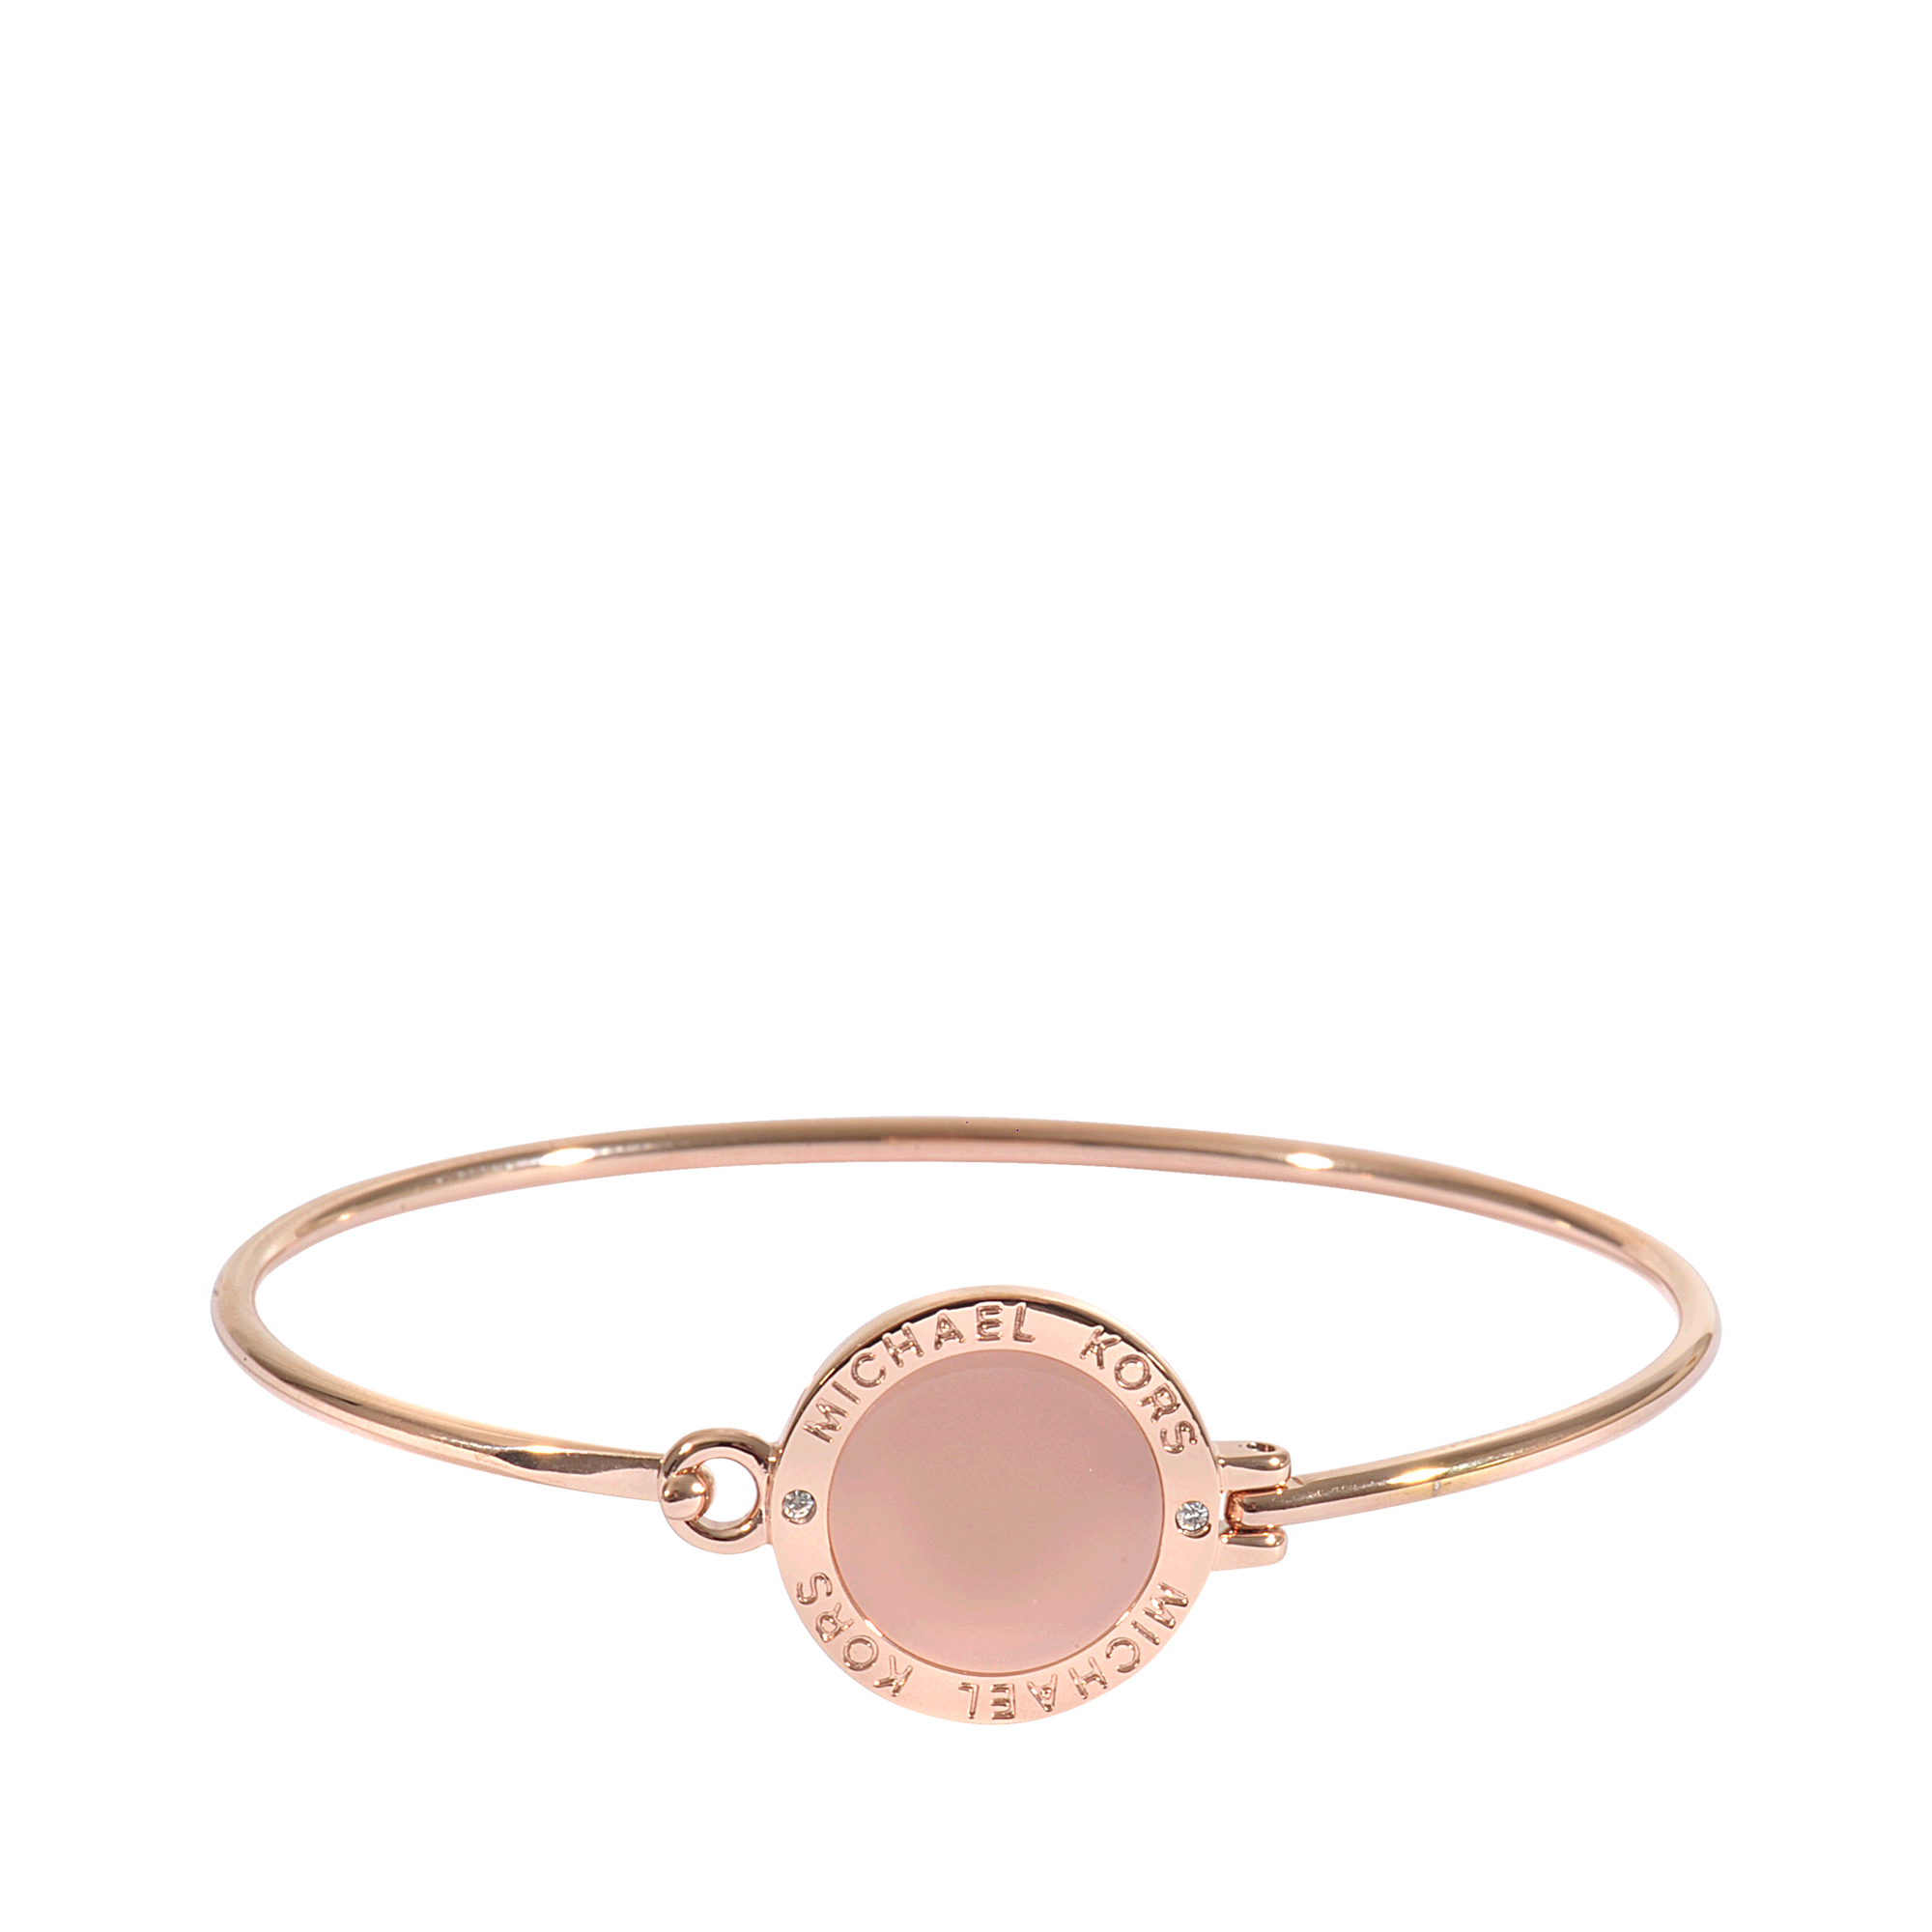 Michael B Jewelry Death Of Lyst Michael Kors Armband Rose Gold Blush In Metallic